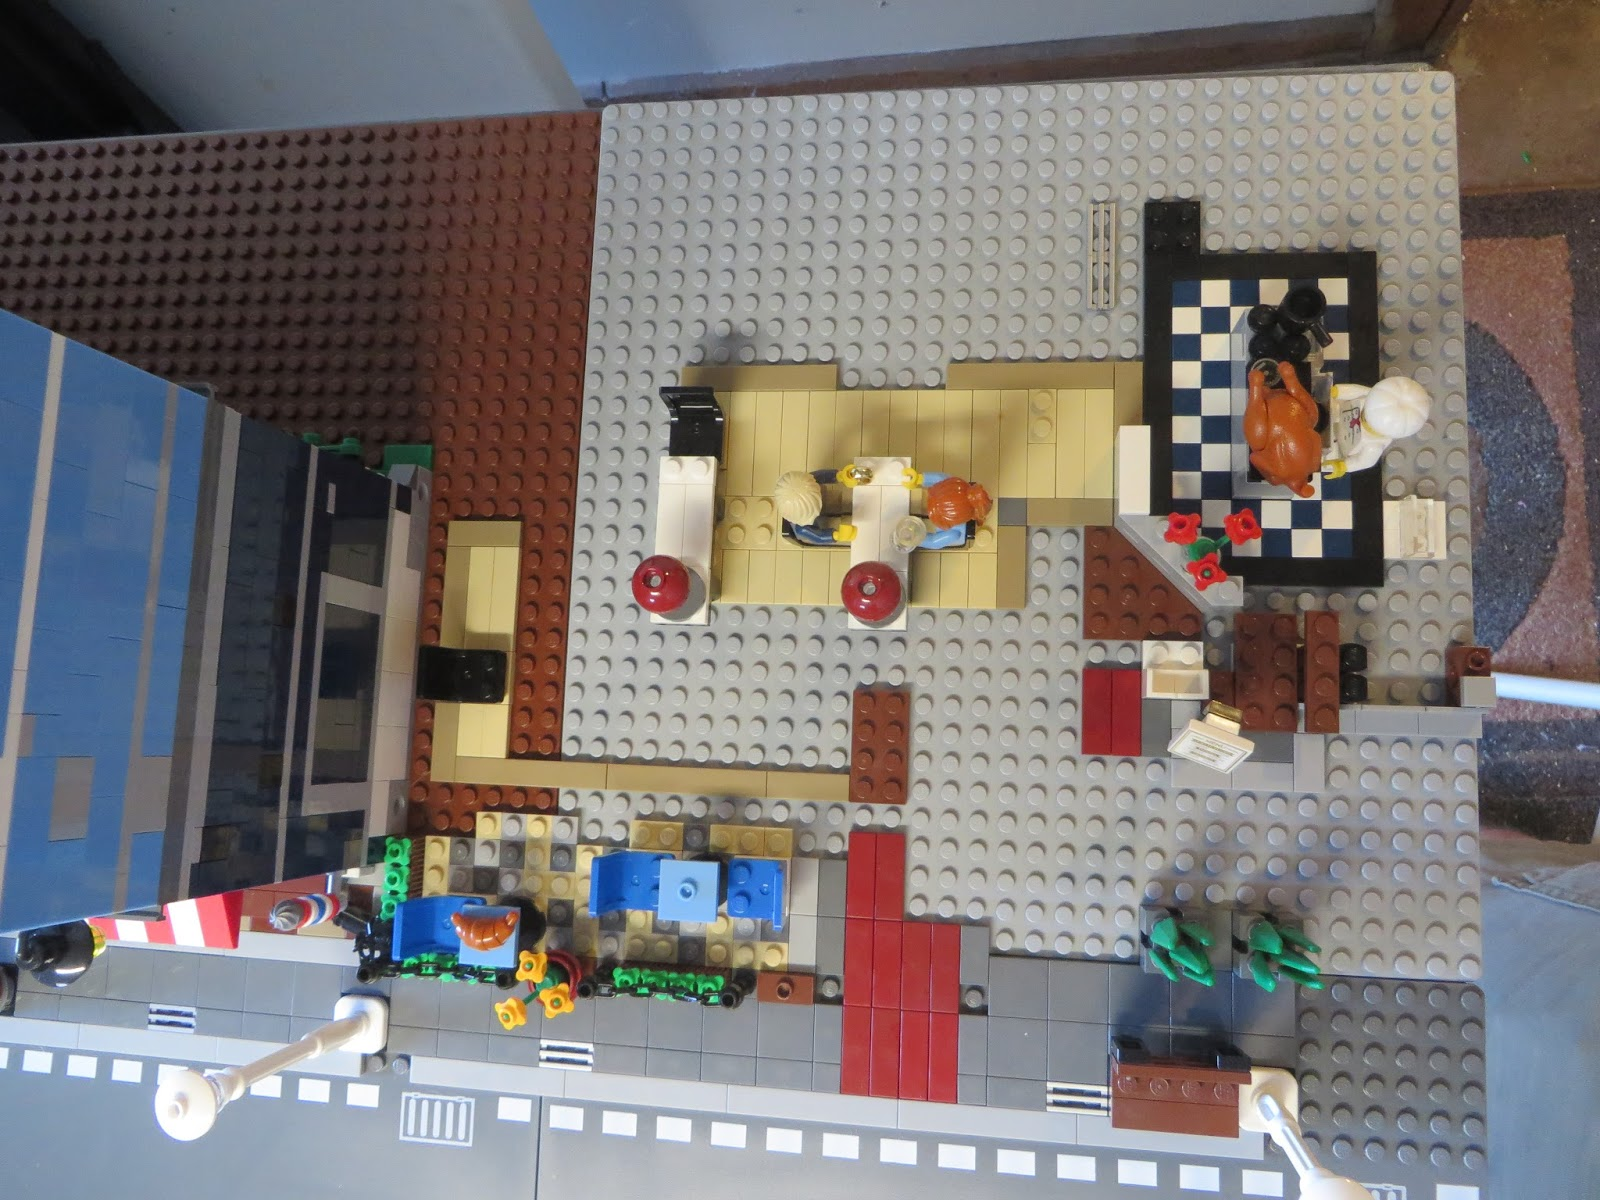 lego modular building layout pictures to pin on pinterest